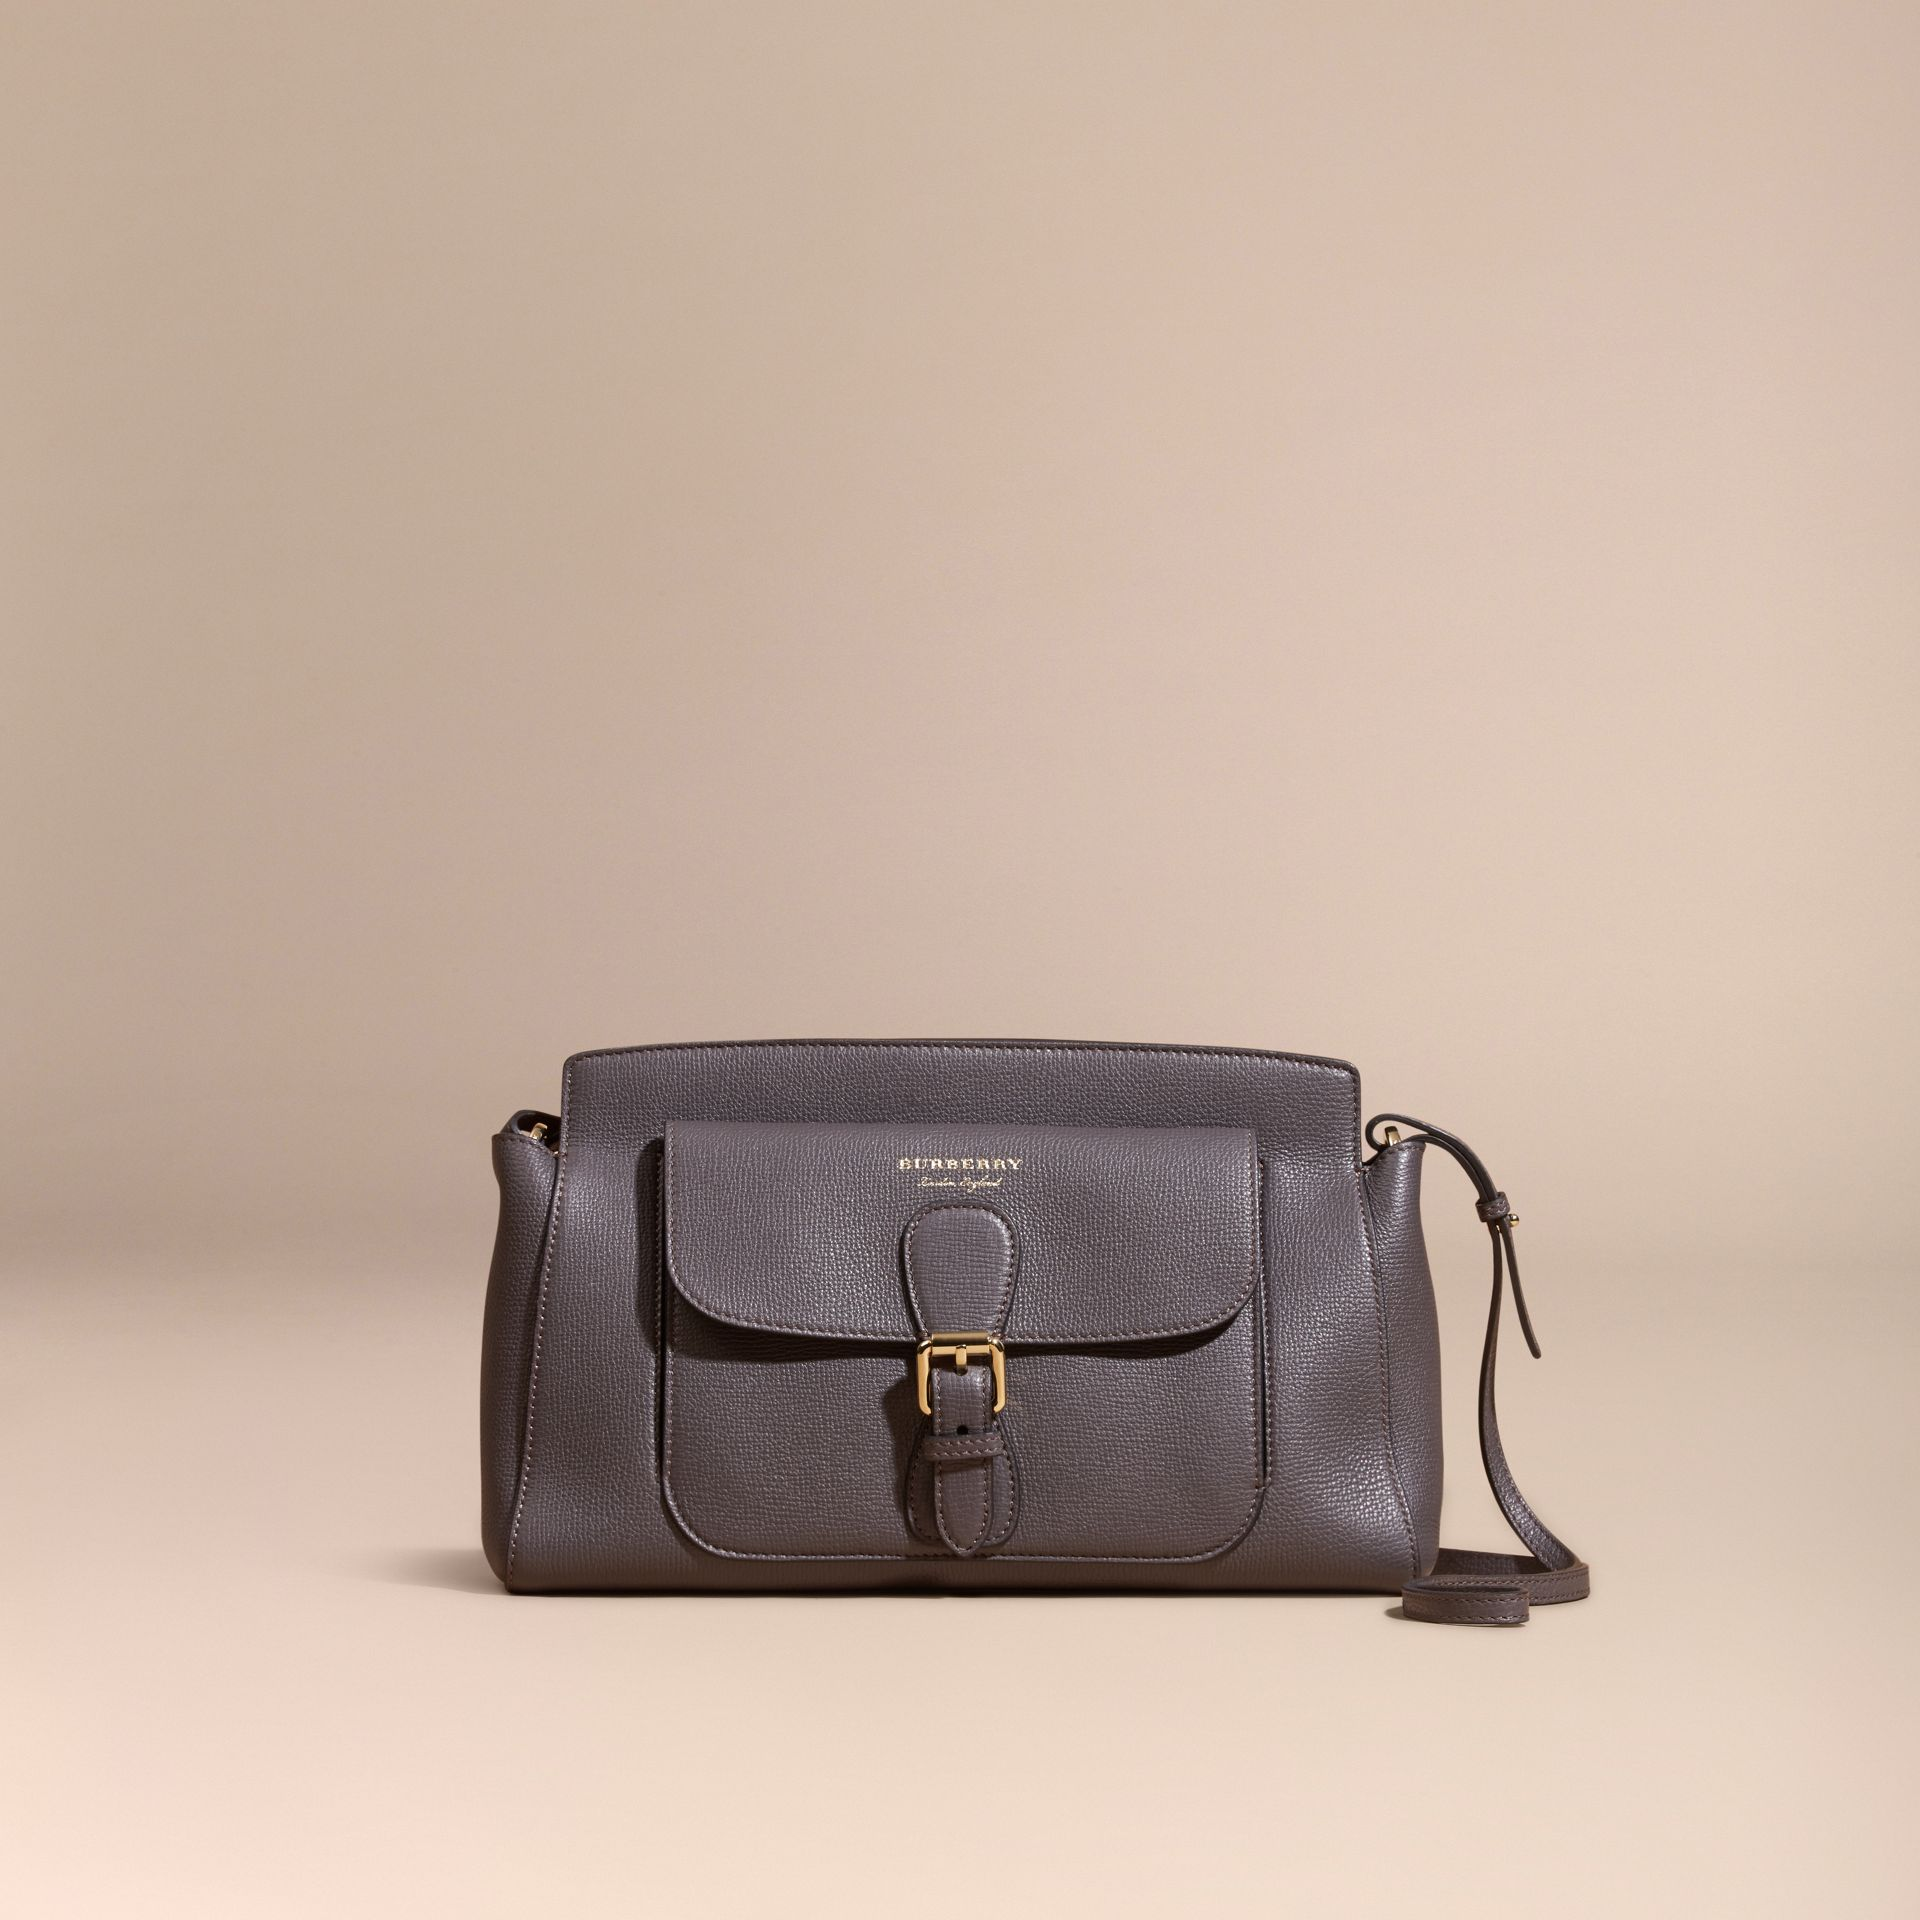 Sepia grey The Saddle Clutch in Grainy Bonded Leather Sepia Grey - gallery image 8